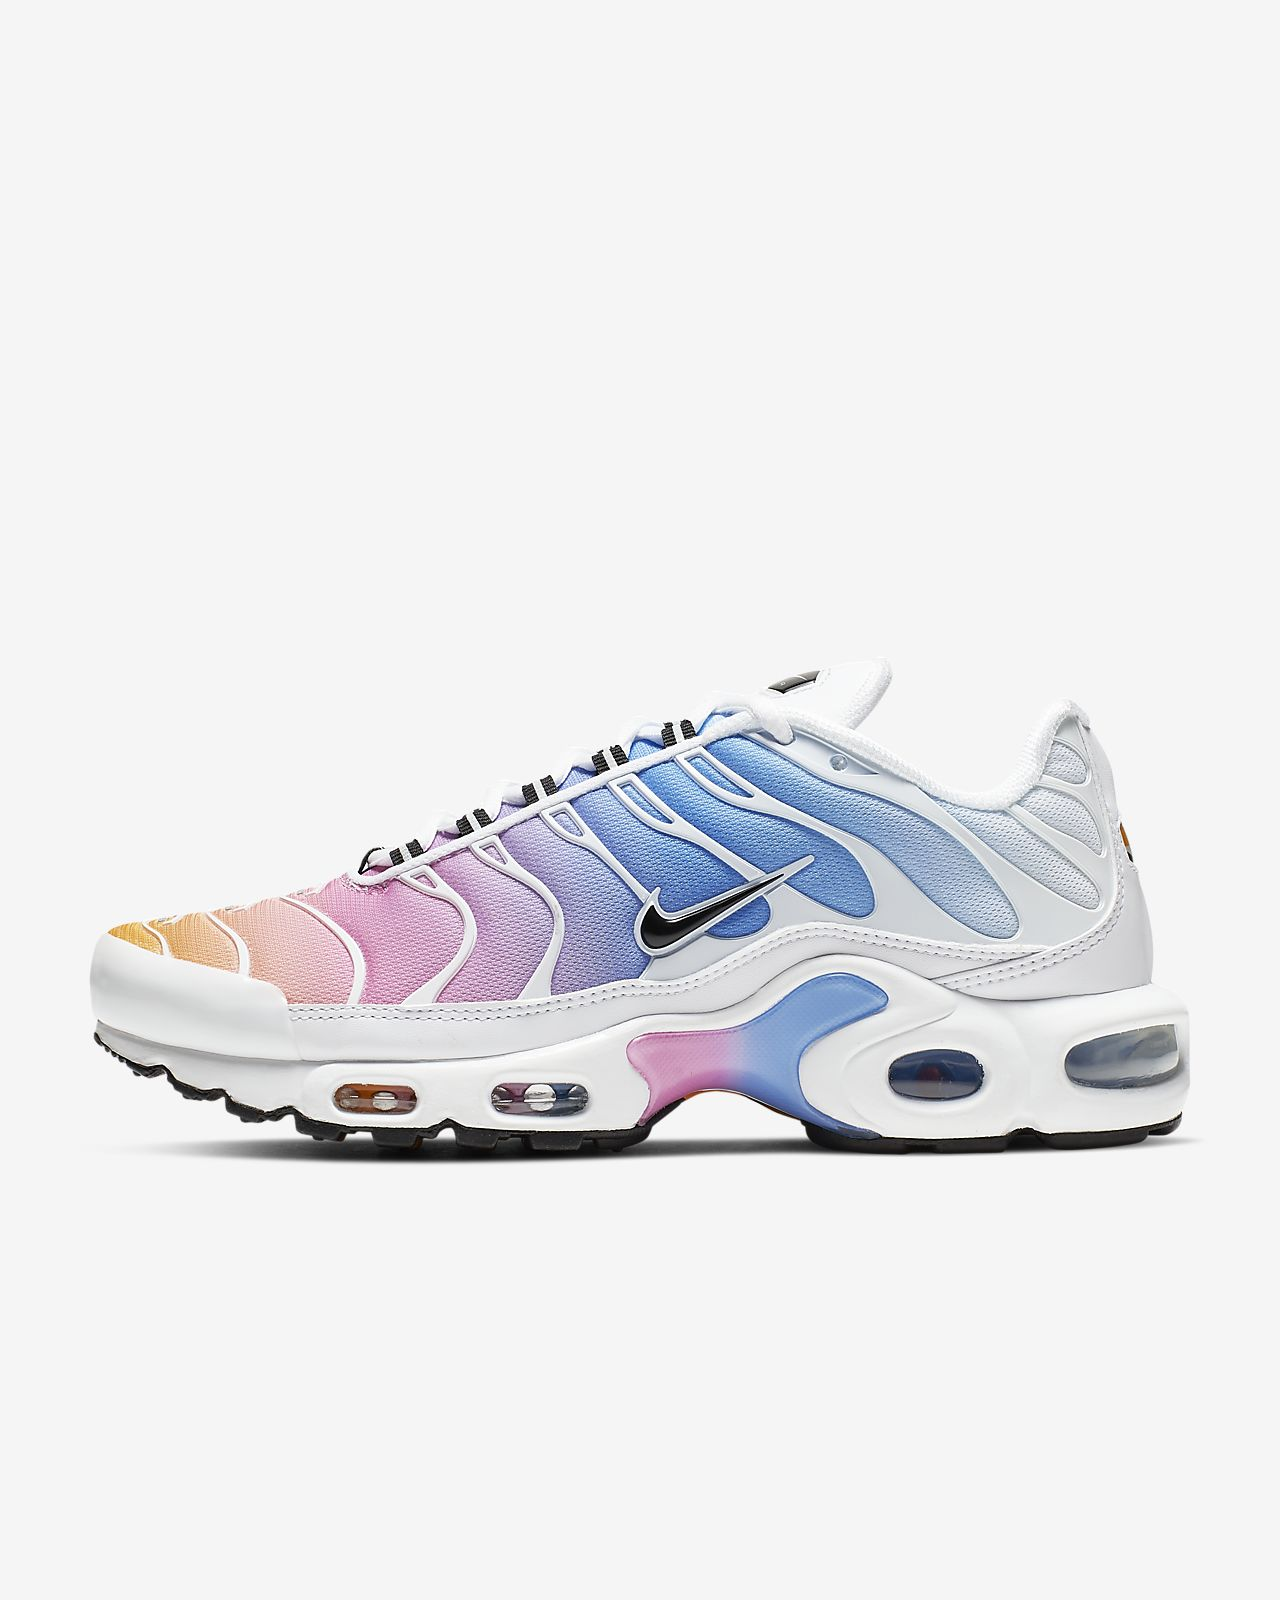 huge selection of 6912b f9a70 Nike Air Max Plus Schuh